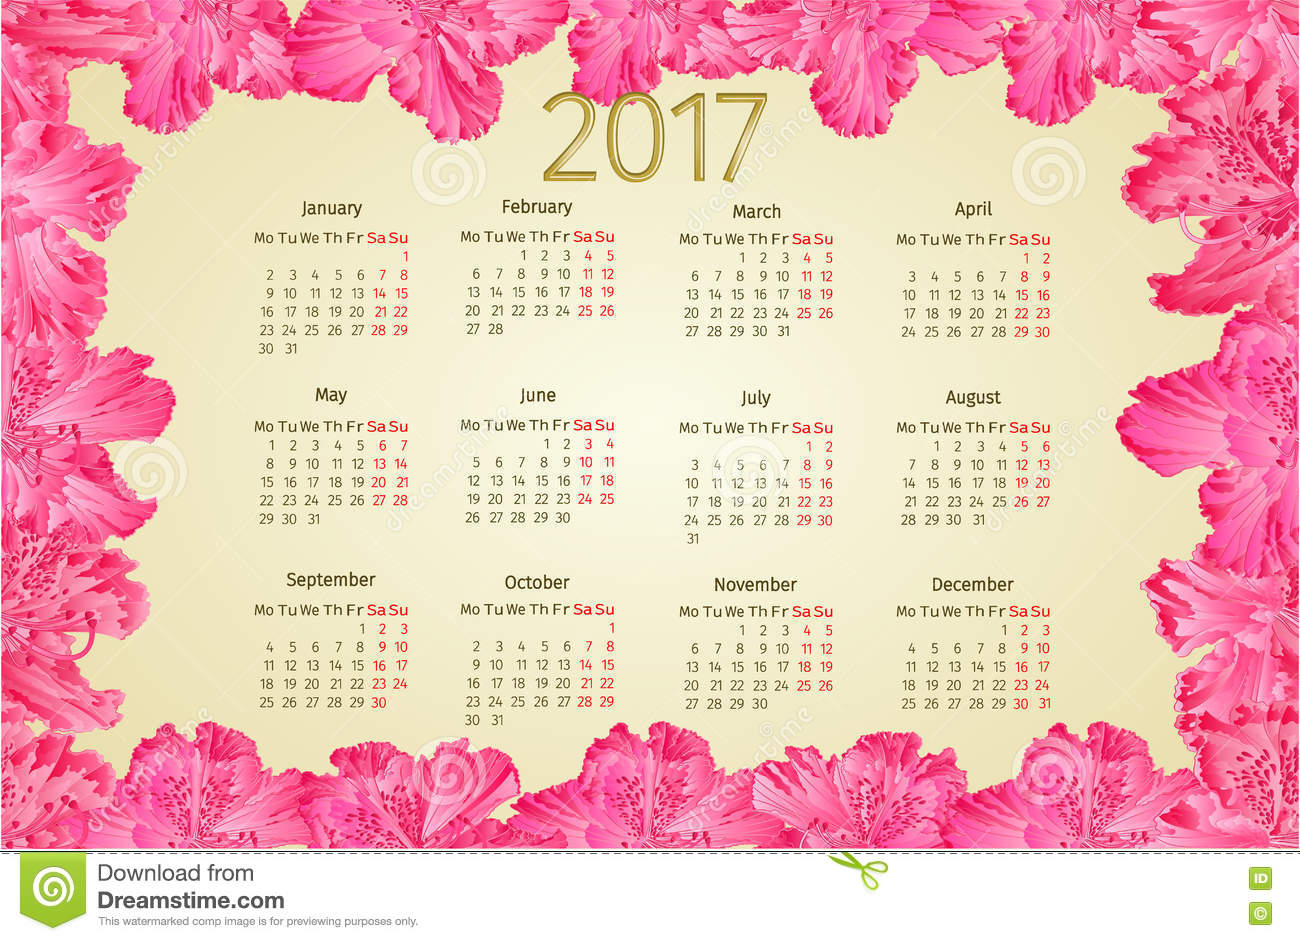 Calendar 2017 With Pink Rhododendron Flowers Vintage ...